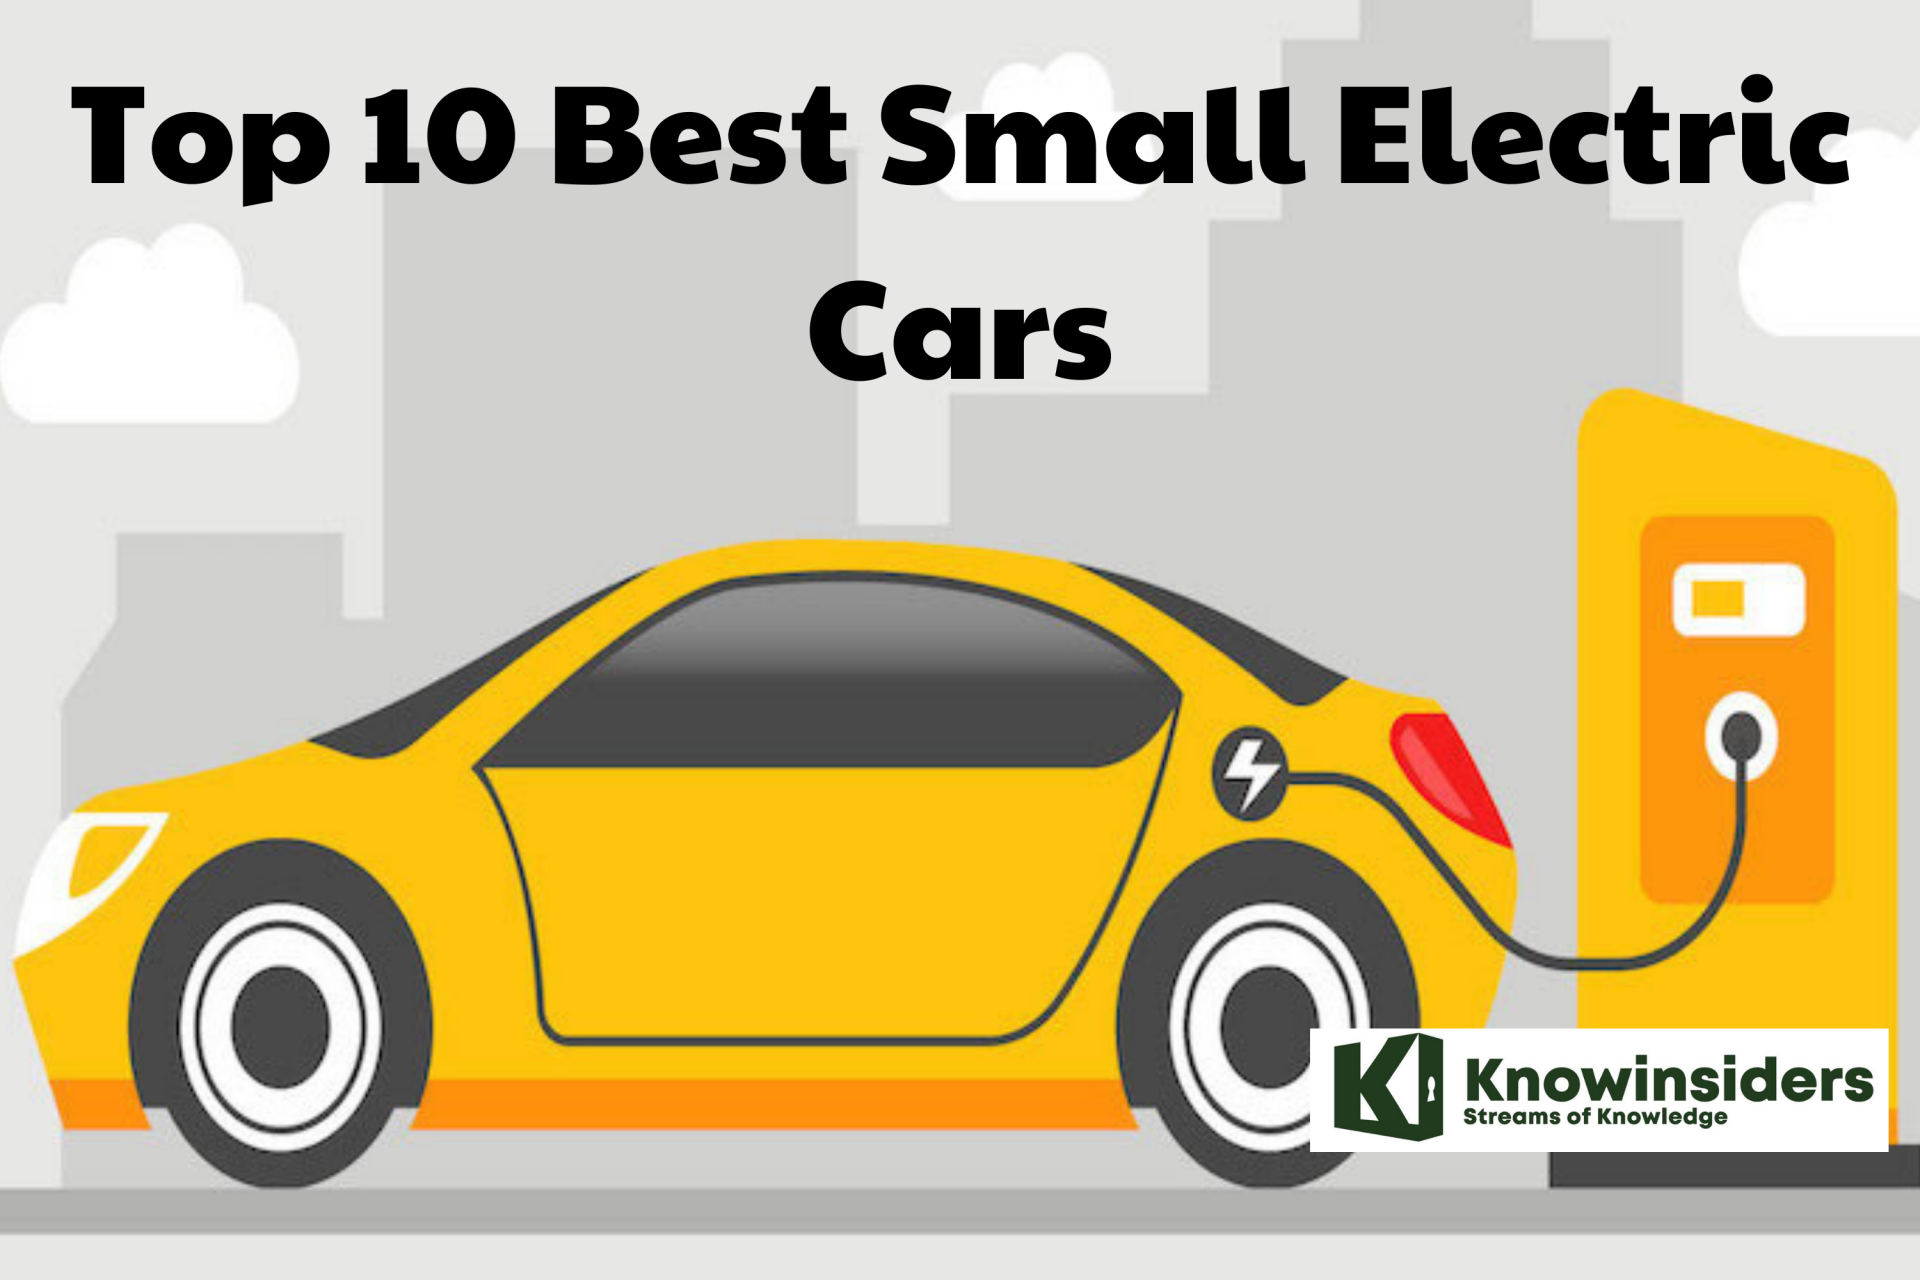 Top 10 Best Small Electric Cars